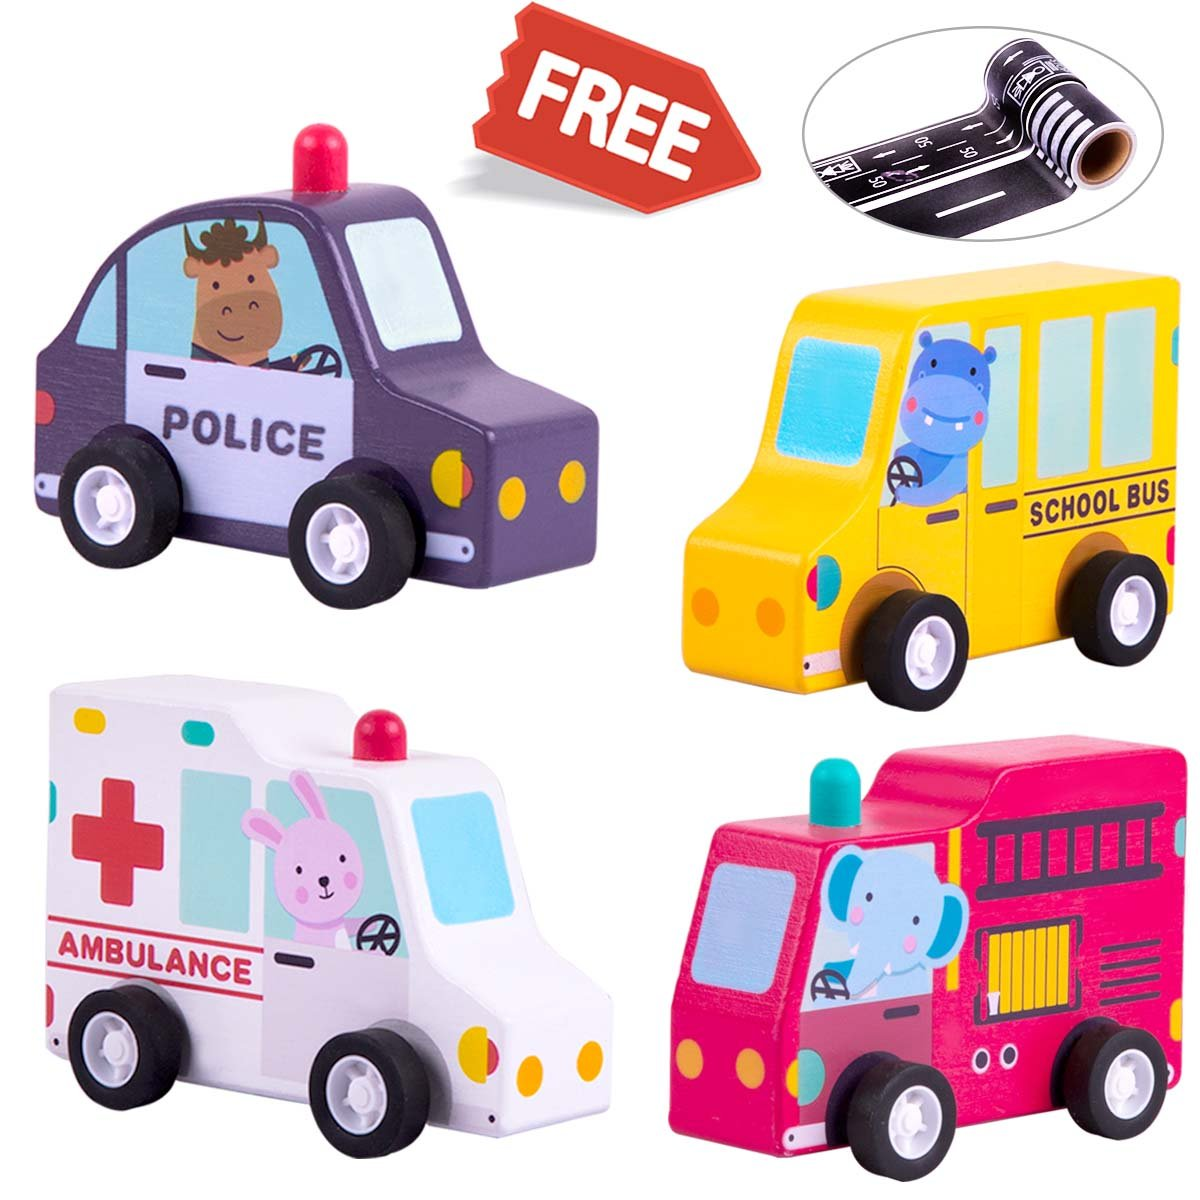 Kids Wooden Pull Back Vehicles Play Set, Emergency Truck Racing Toys with 2x Free Road Tapes, School Bus, Police Car, Fire Truck, Ambulance, Gift Pack for 1, 2, 3, 4 Years Old Baby Toddlers Boys Girls